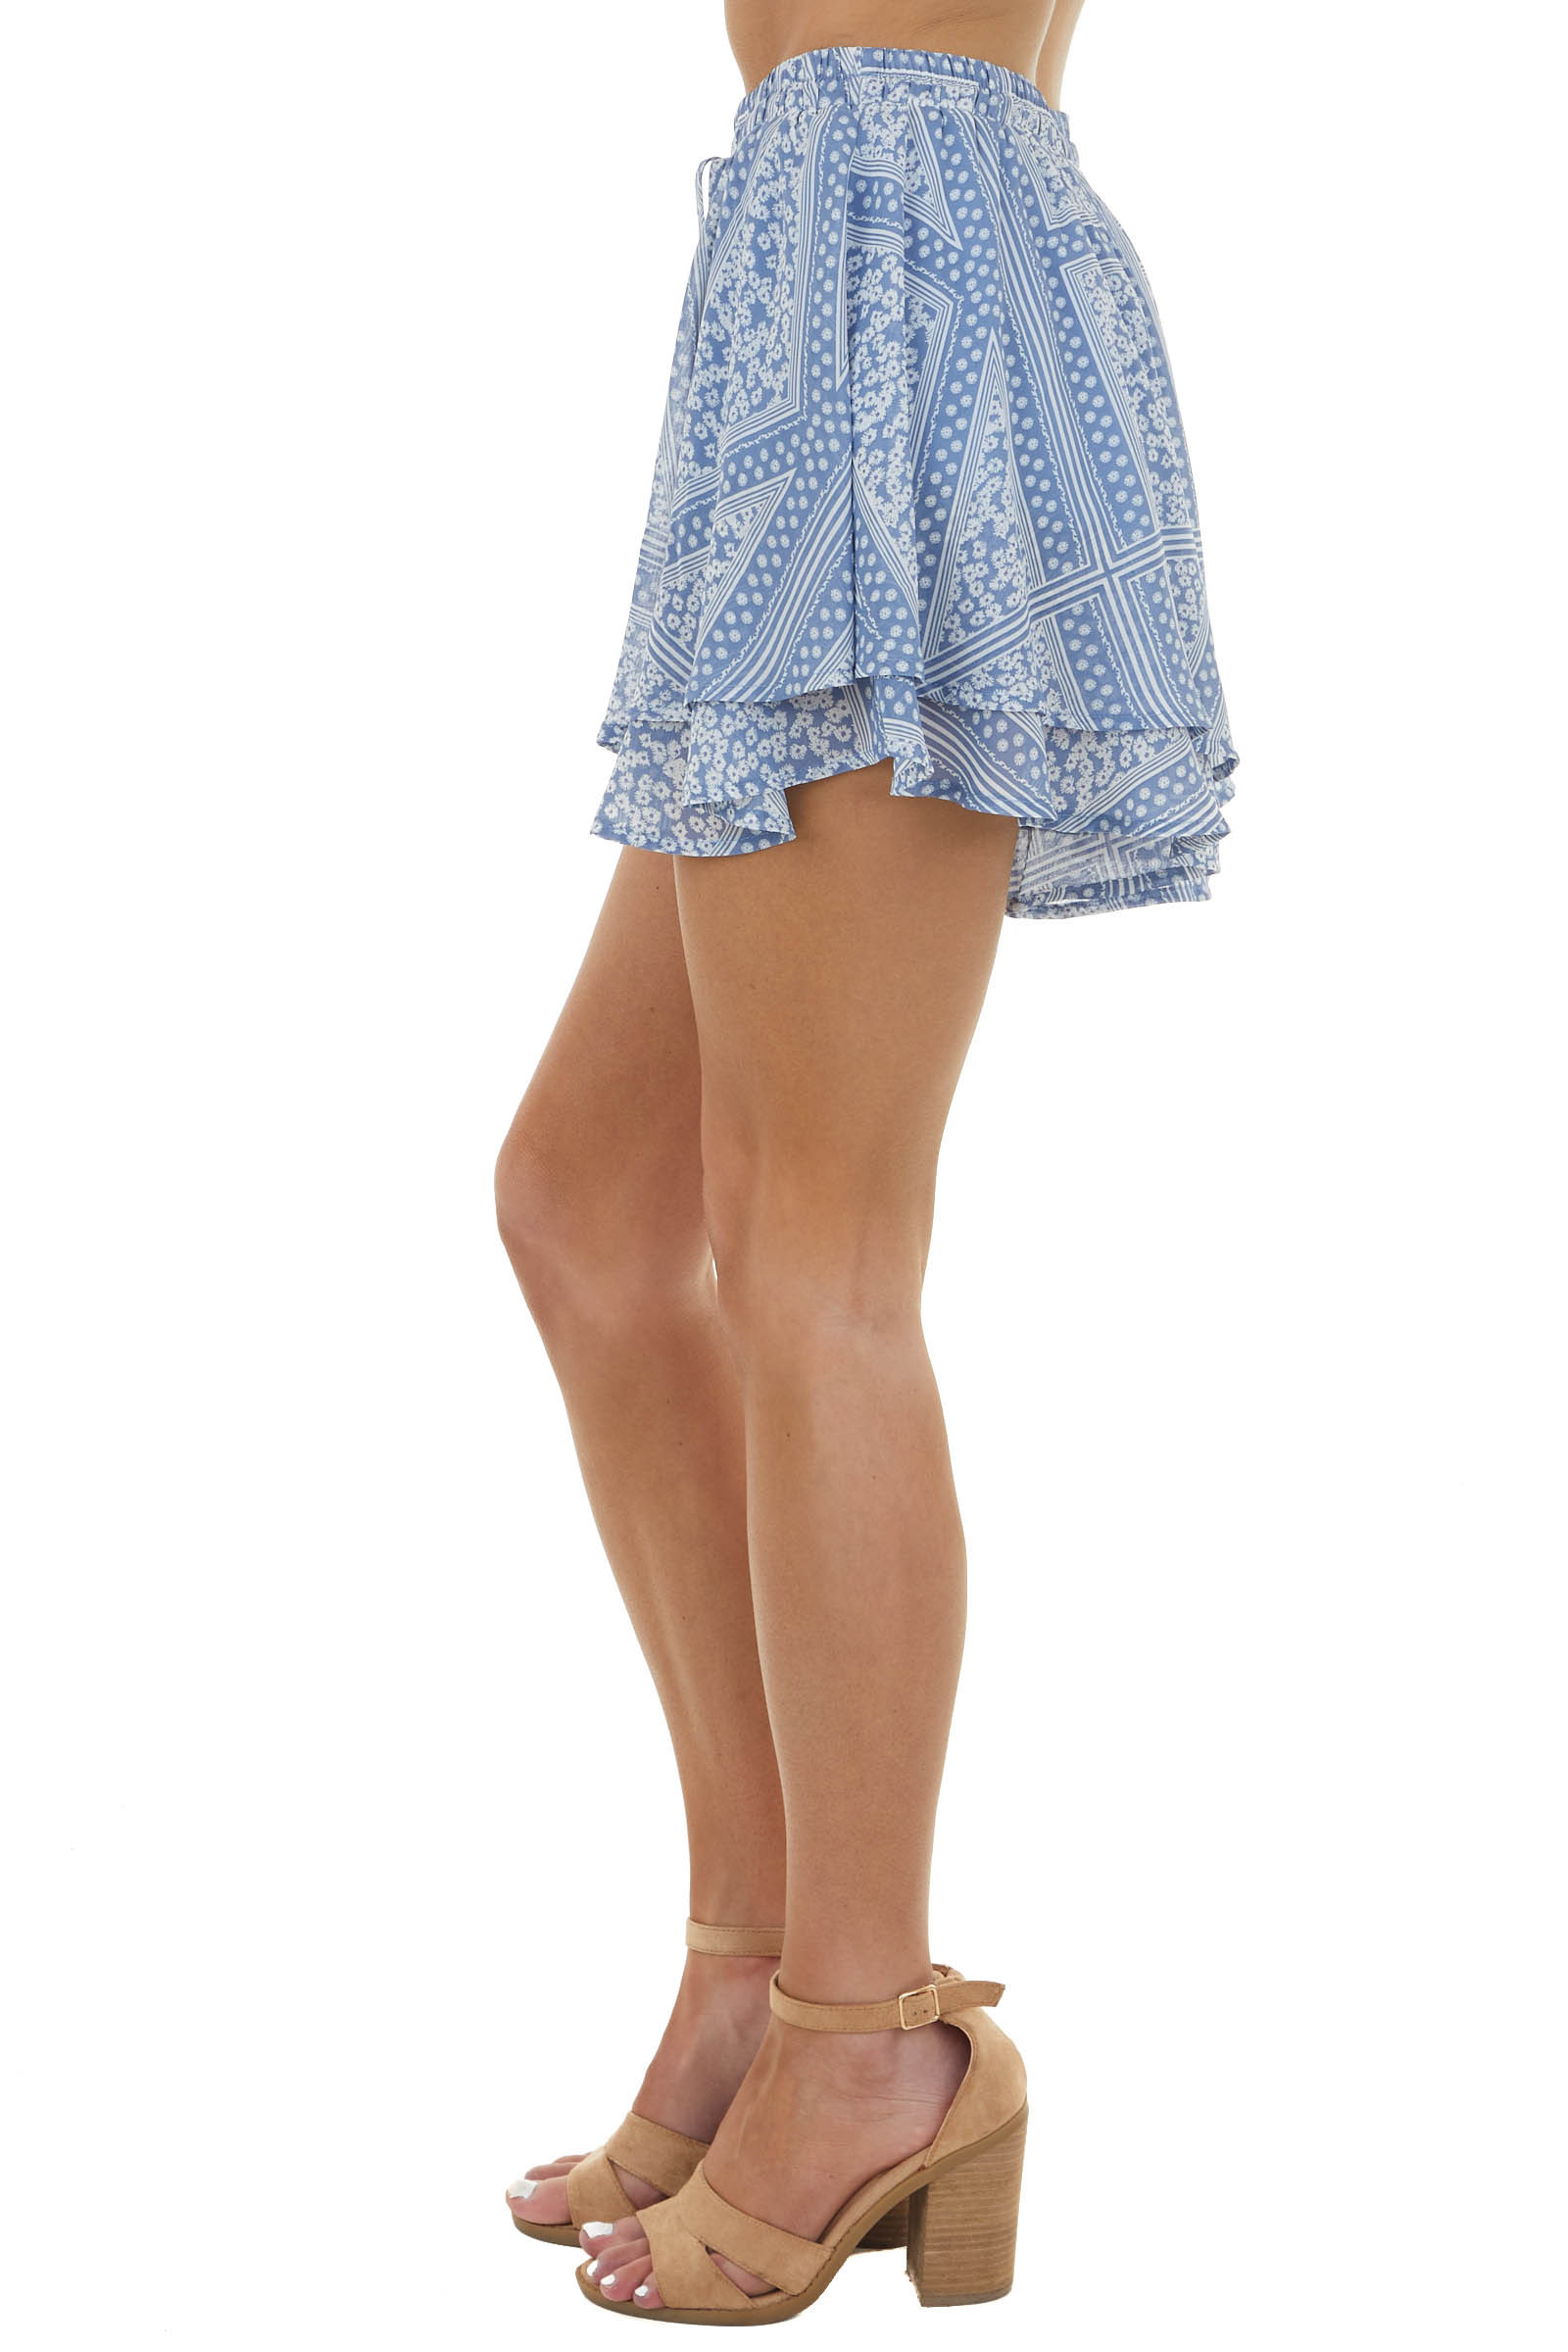 Dusty Blue Printed Woven Layered Shorts with Drawstring Tie